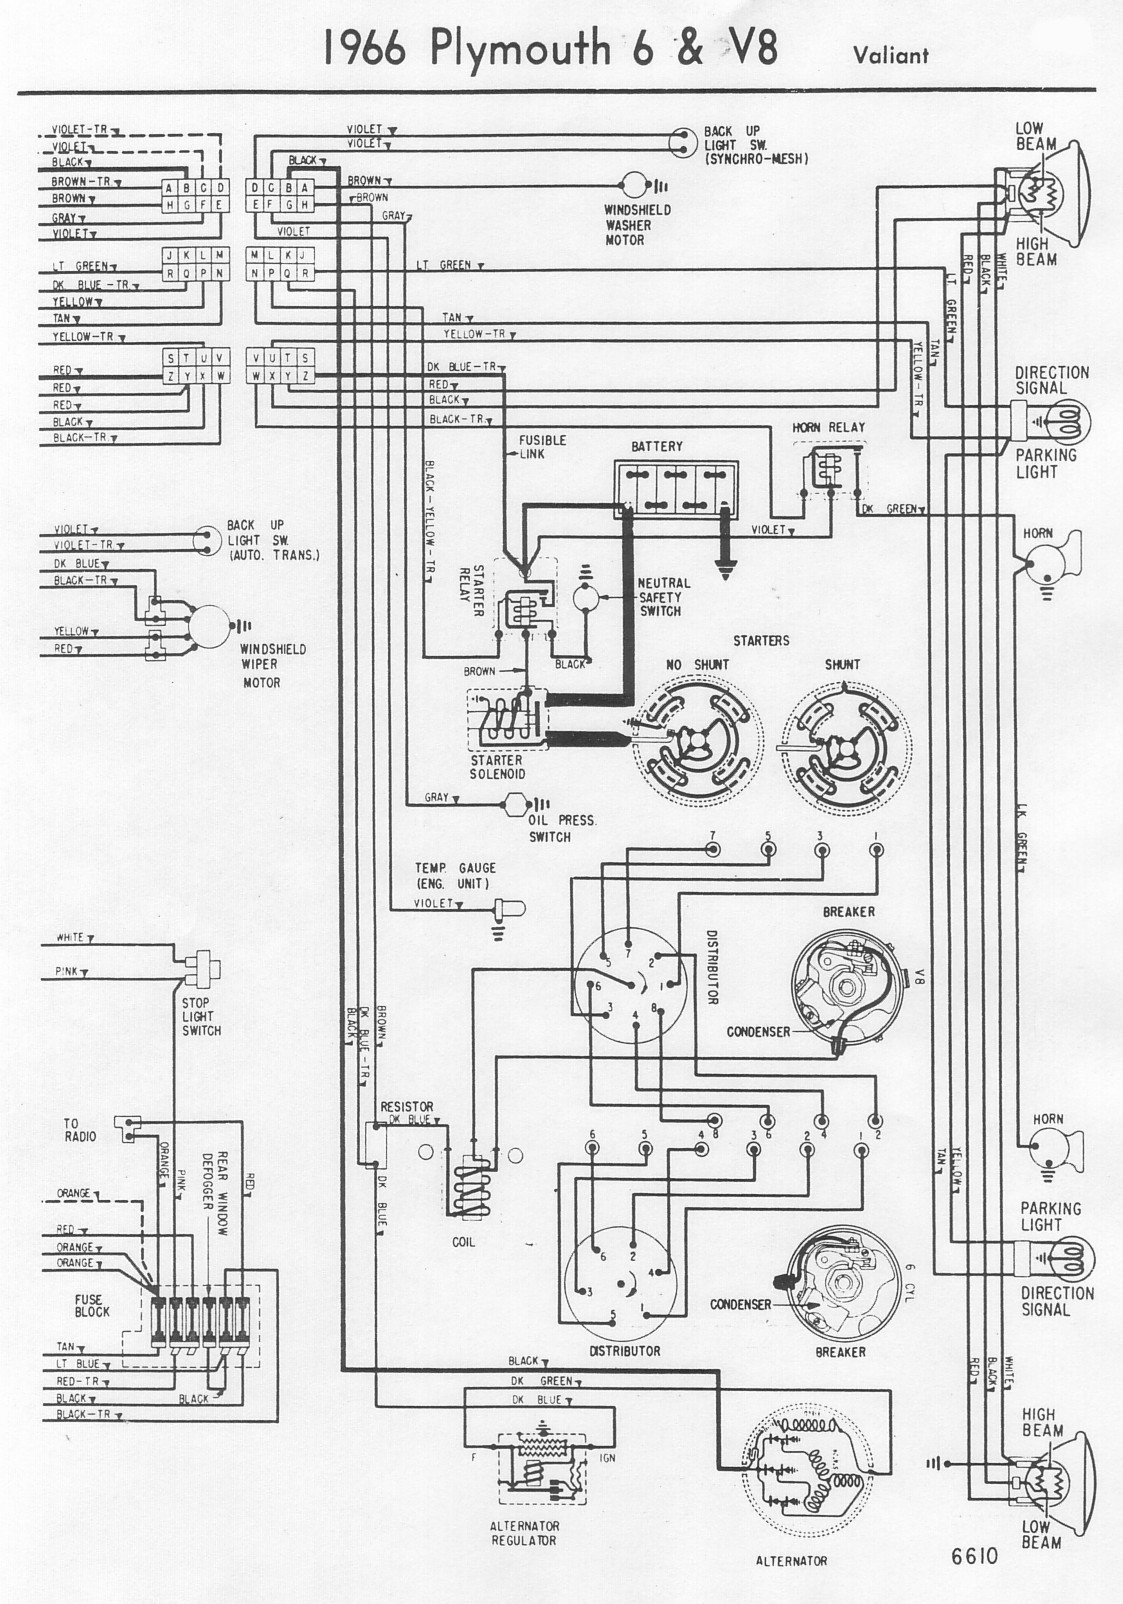 Wiring Diagram For 1966 Plymouth Barracuda Archive Of Automotive 1973 Valiant Engine 1964 Cuda Harness Schematics Rh Thyl Co Uk